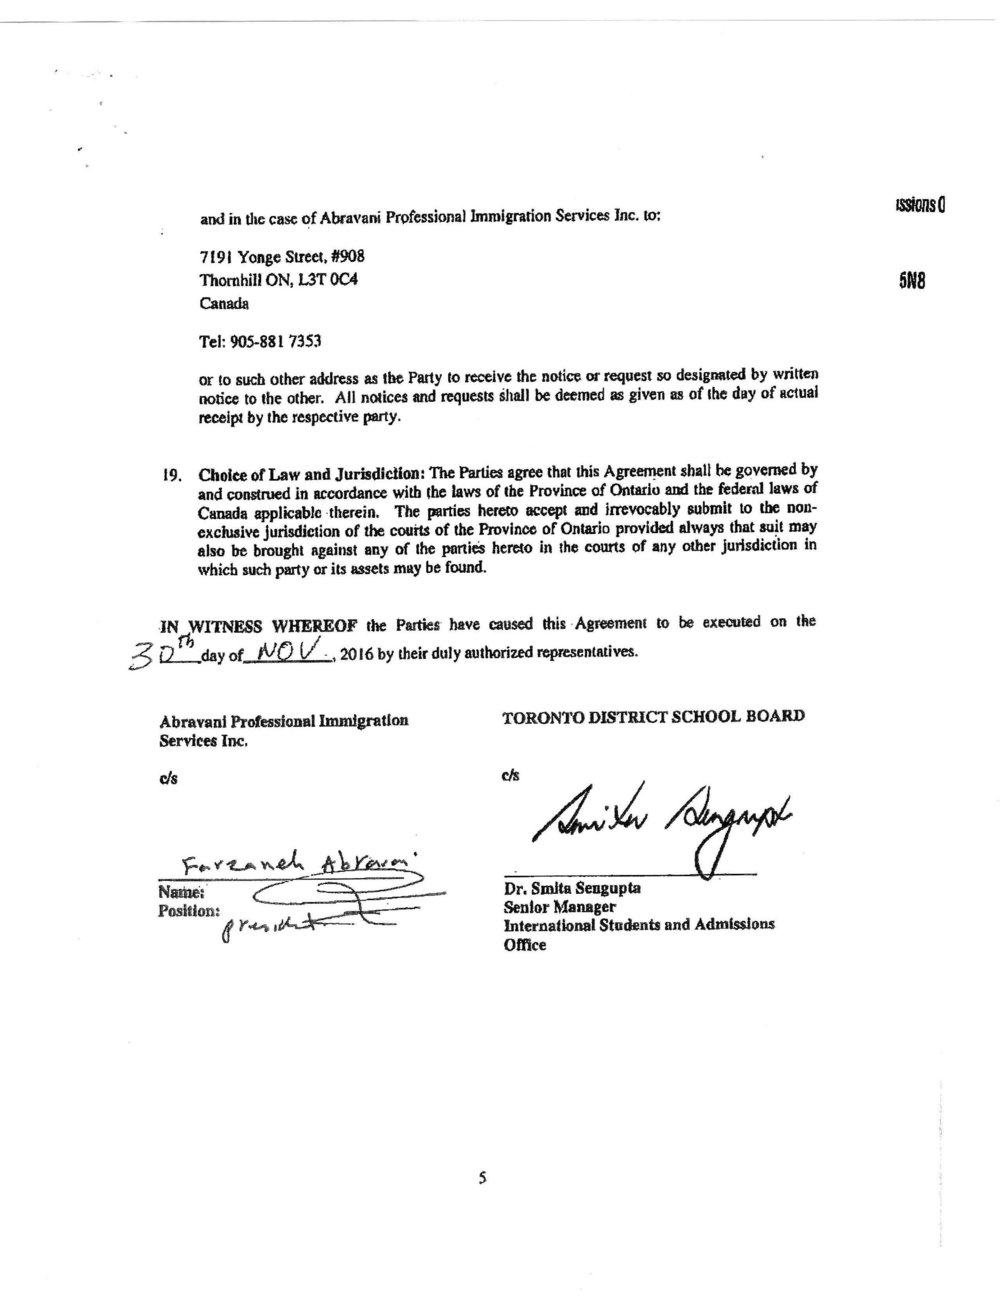 Agent certiifcate_Page_07.jpg